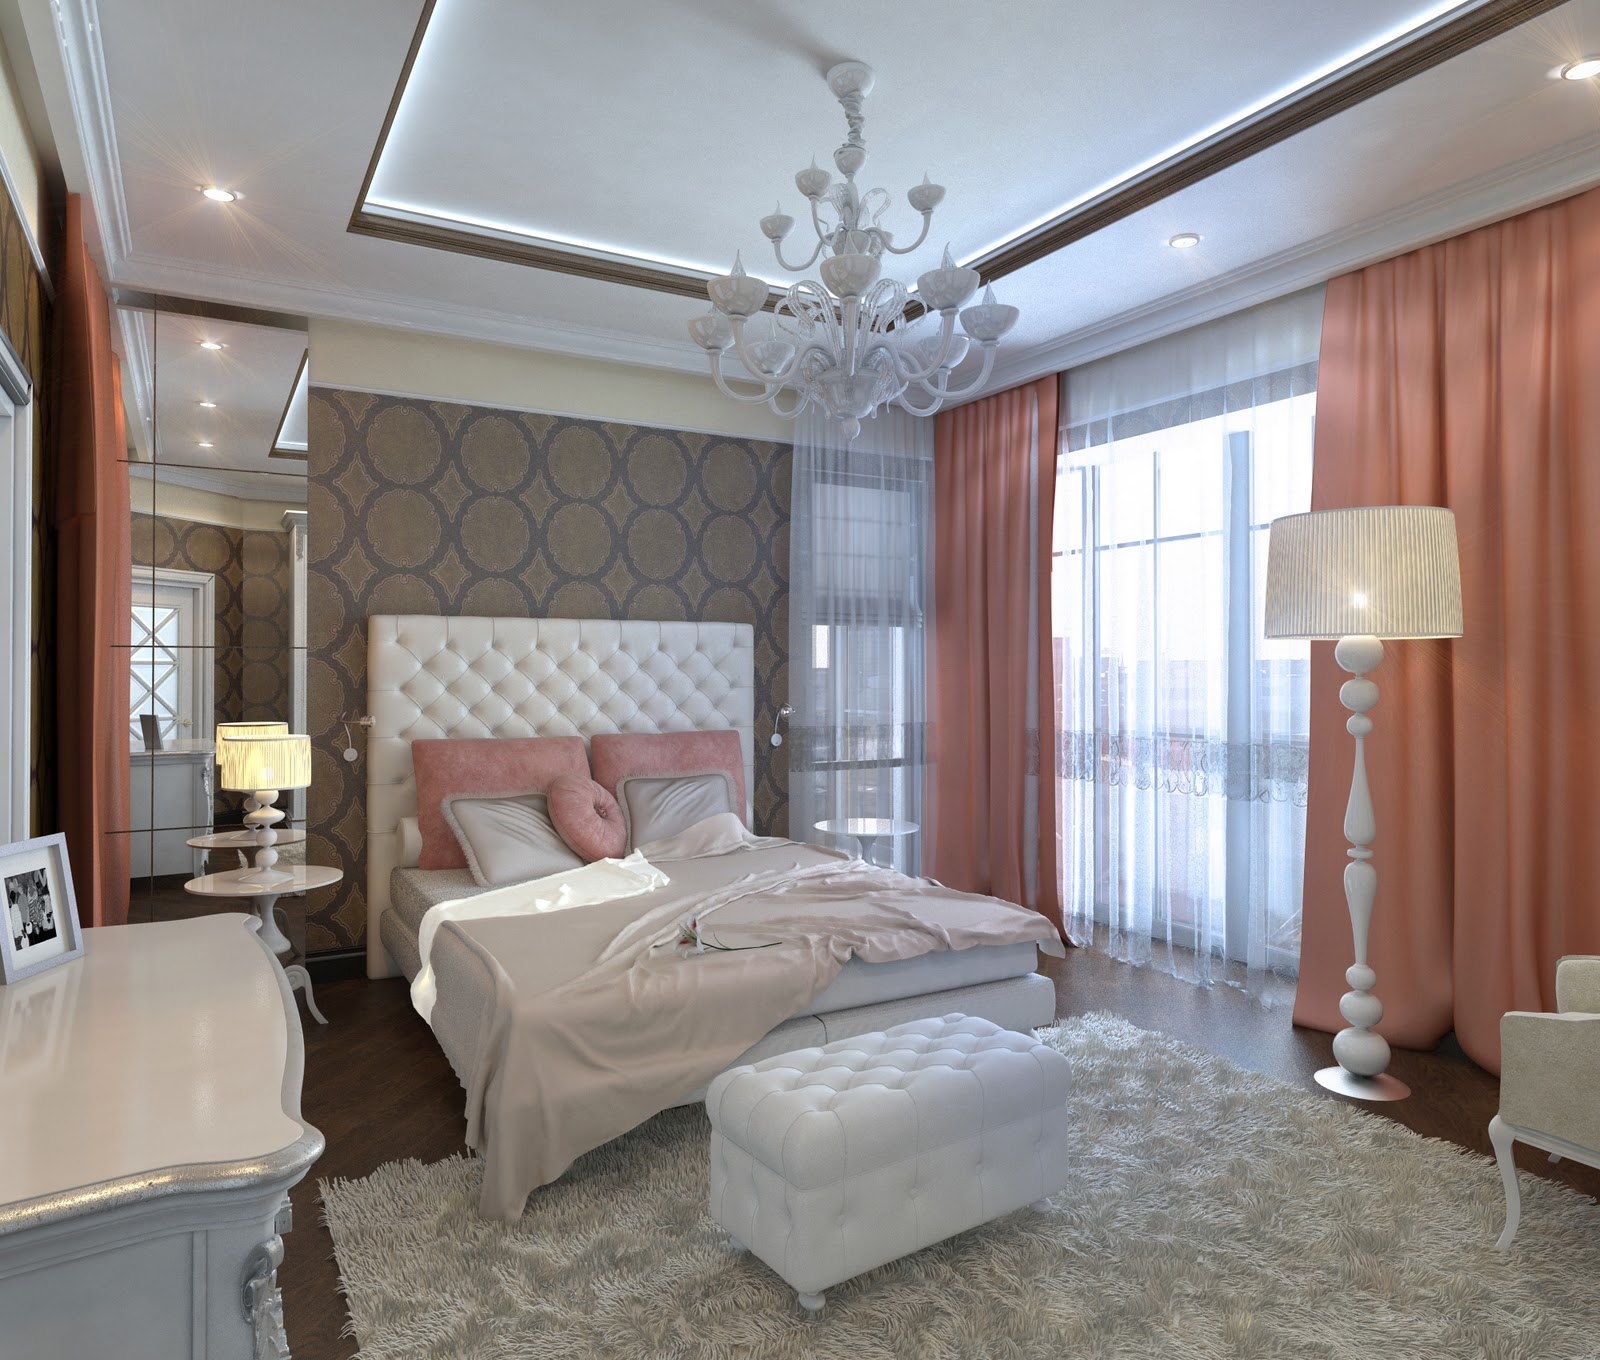 Room Decor Bedroom Decor Und: 3d Design: Bedroom Art Deco